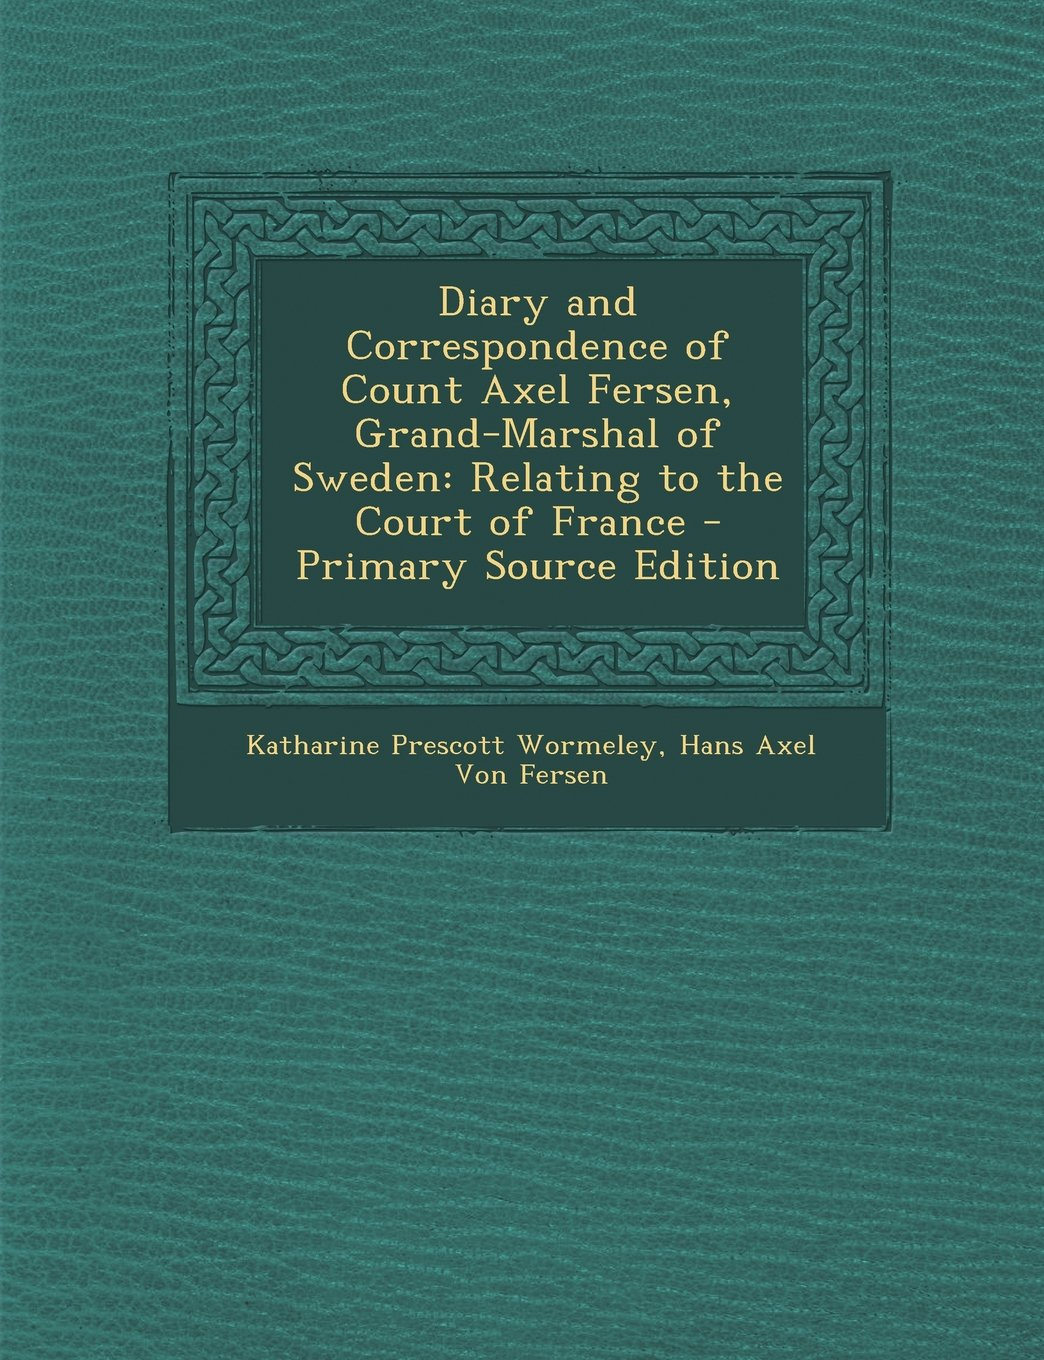 Diary and Correspondence of Count Axel Fersen, Grand-Marshal of Sweden:  Relating to the Court of France - Primary Source Edition Paperback –  December 31, ...